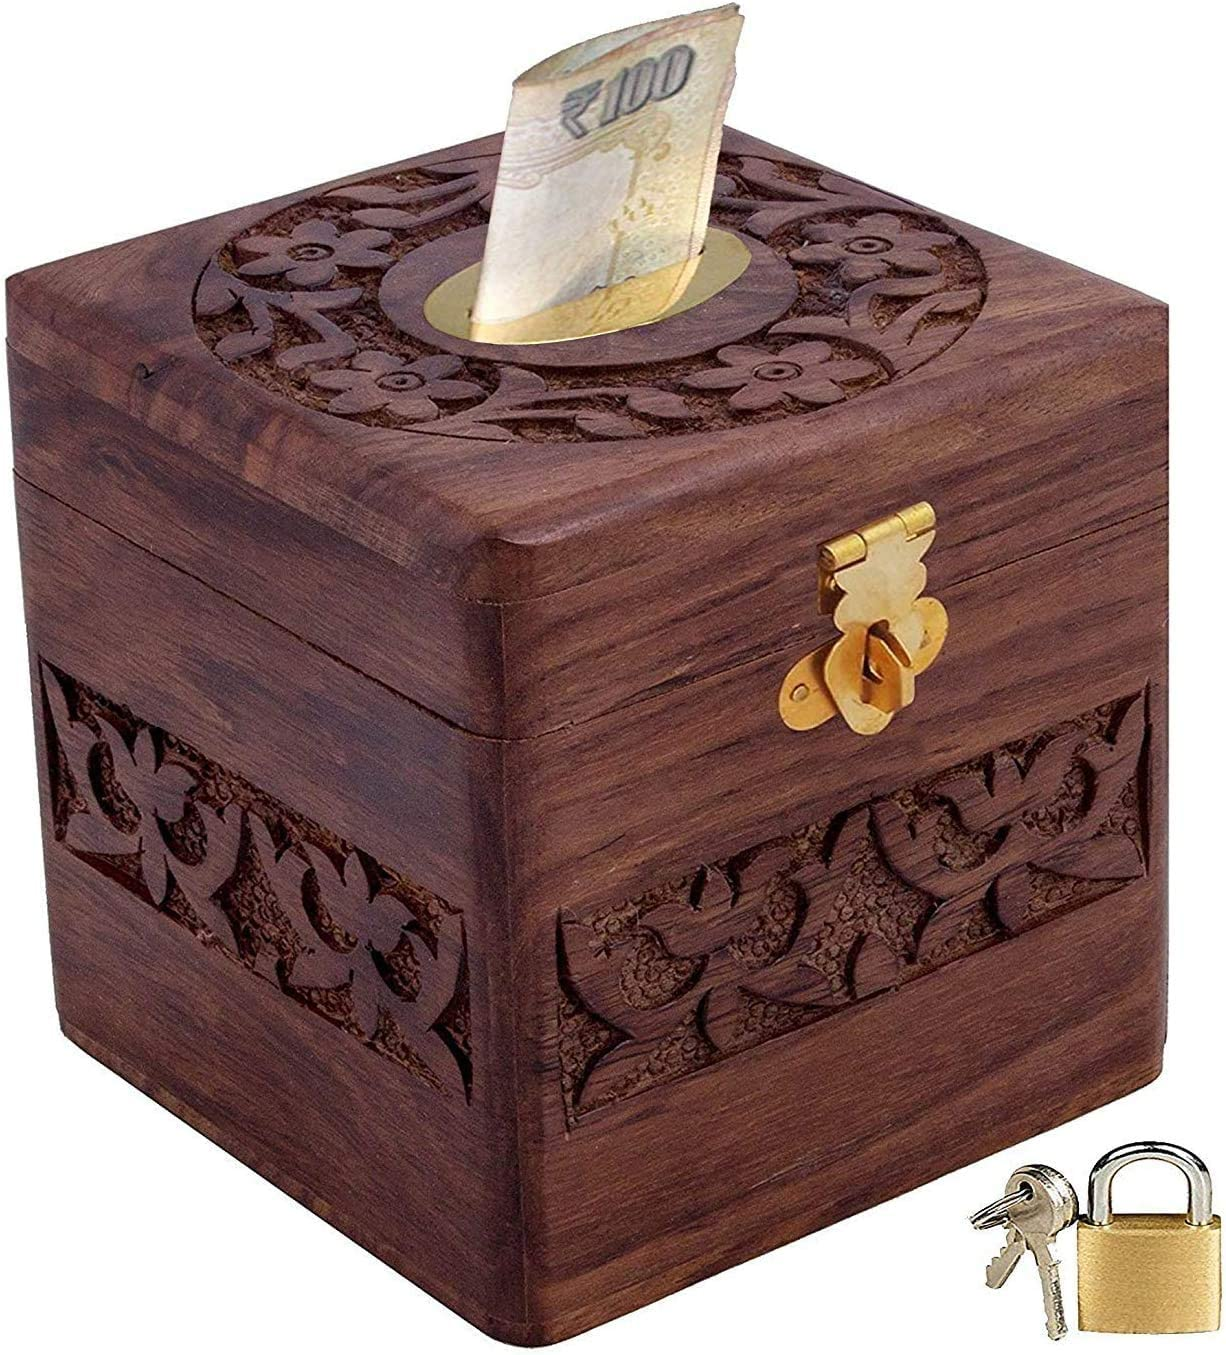 Carving Piggy Bank Safe Money Bank for All Ages Gift for Kids Carving Money Bank Money Storage Box Wooden Carving Money Bank Square Shape Coin Box